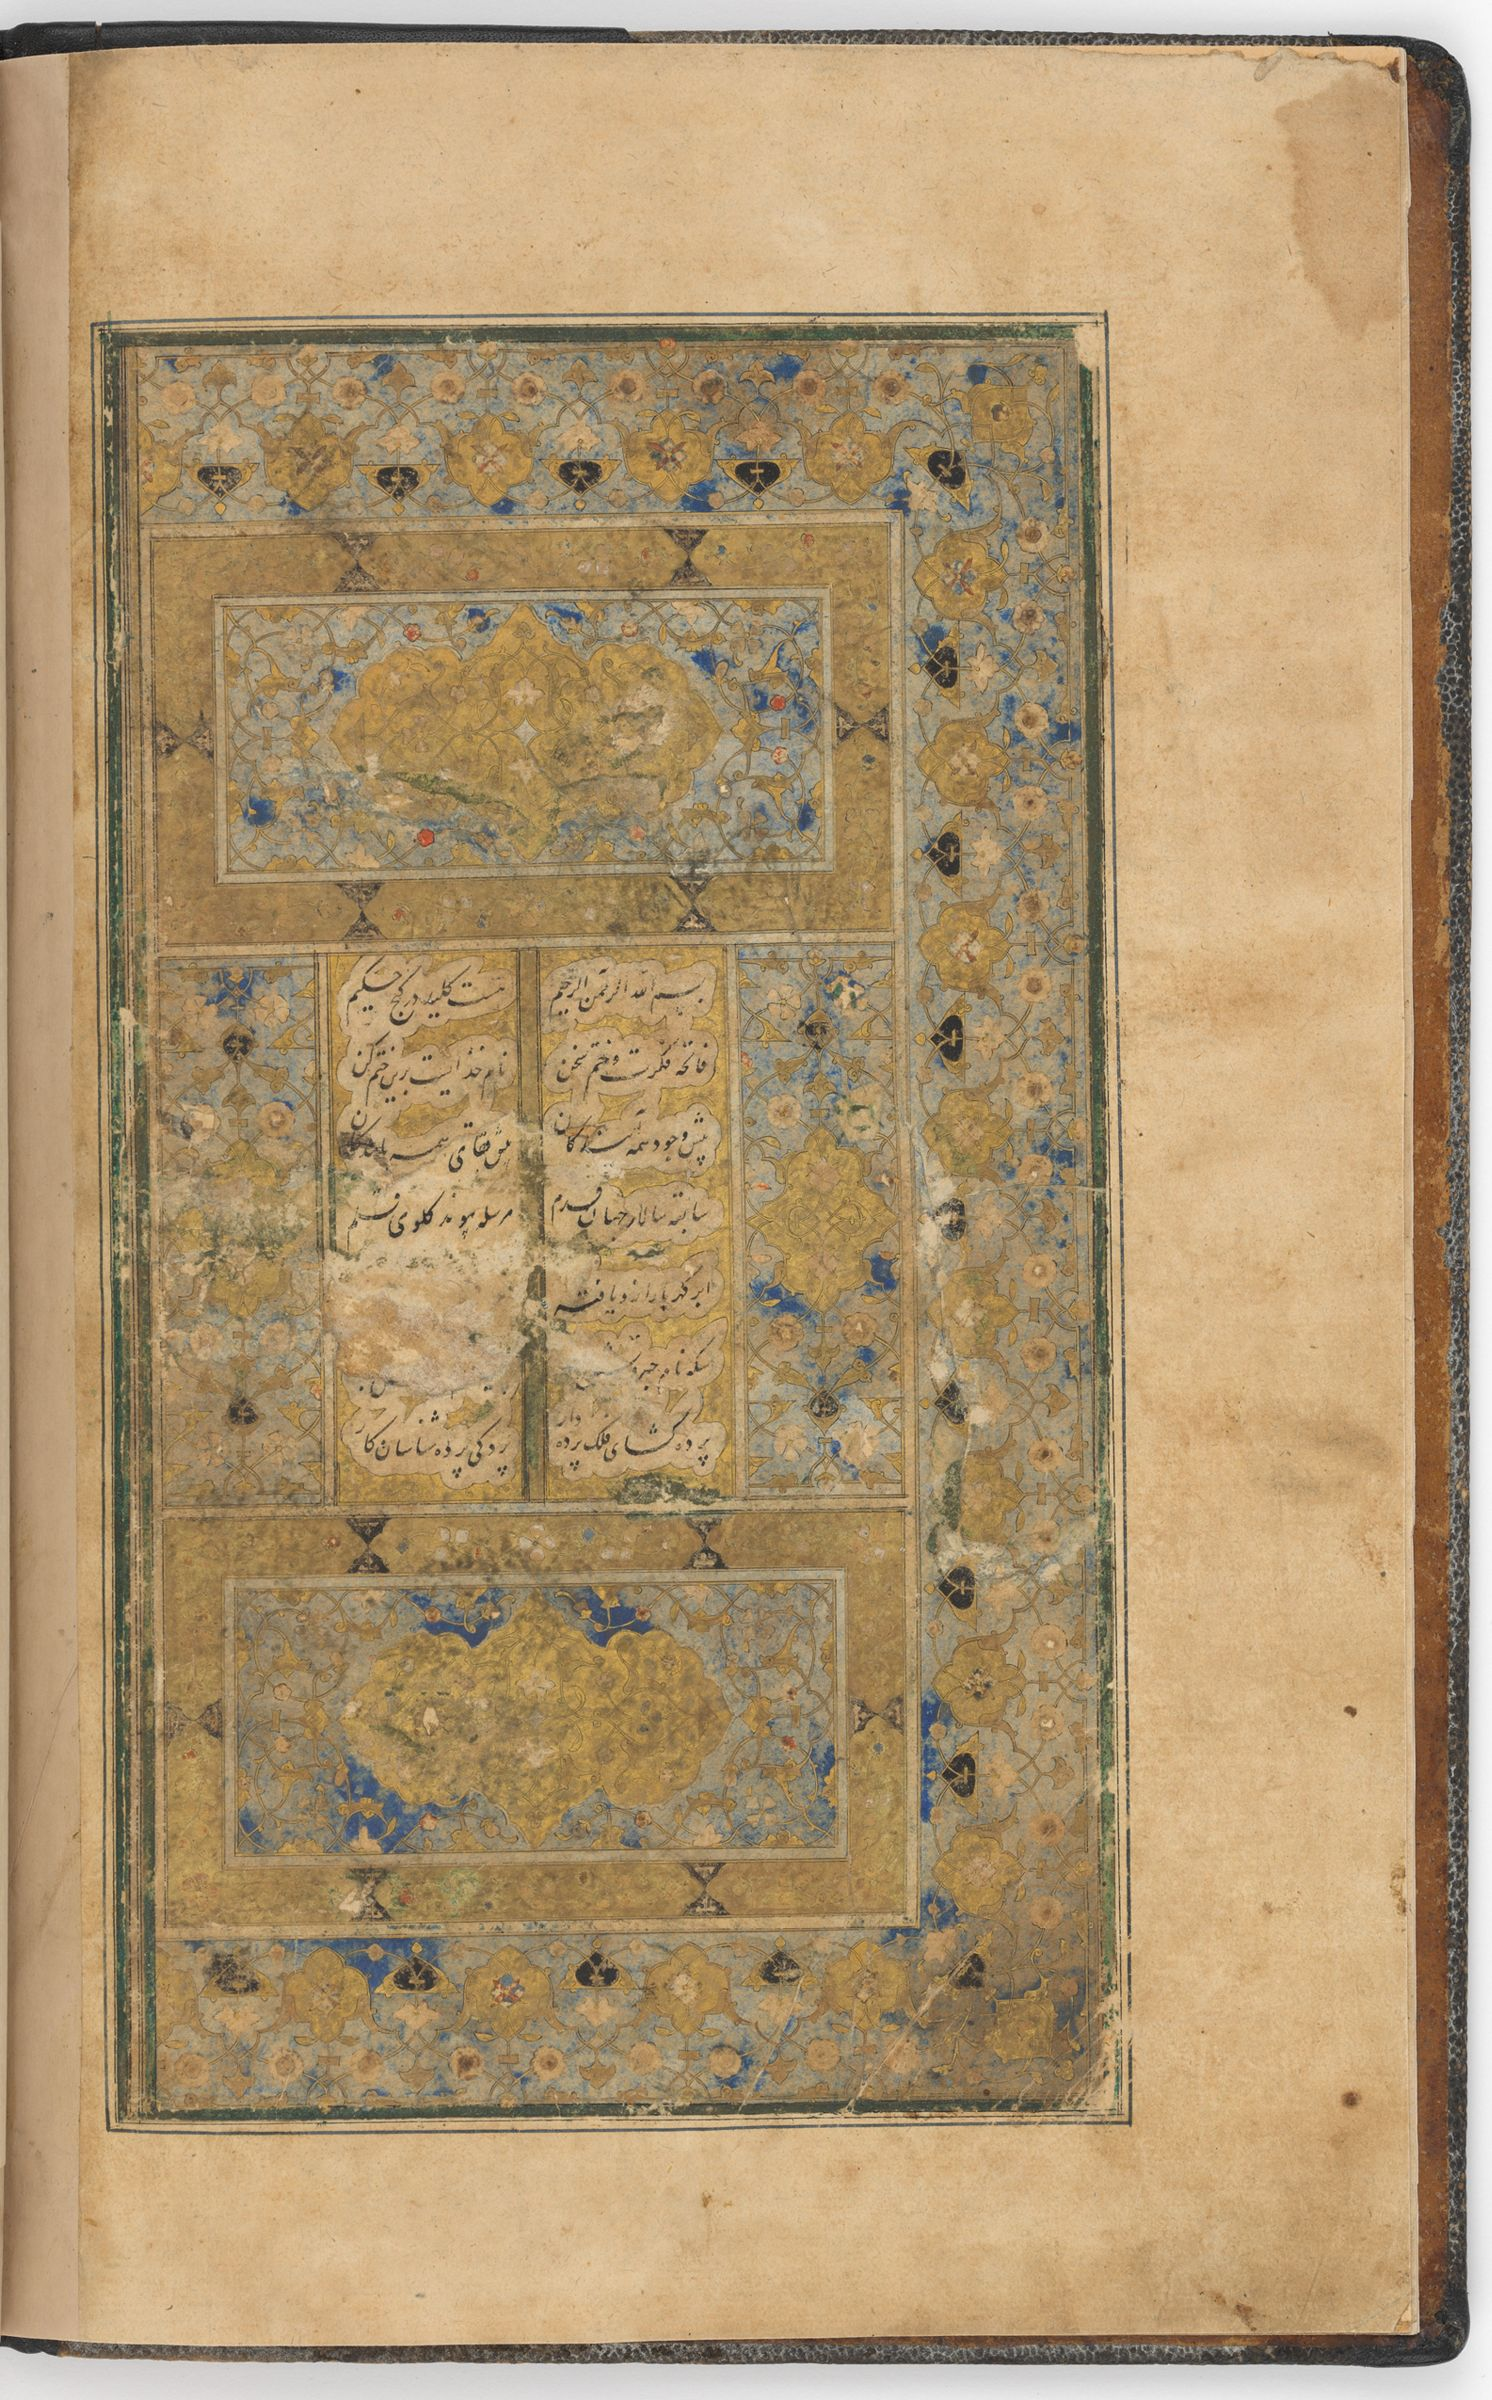 Acquisition Note Of Basile B. Corpi And The Right Half Of The Double-Page Illuminated Frontispiece (Acquisition Note Of Basile B. Corpi Recto  And Illumination Verso Of Folio 2) From A Manuscript Of The Khamsa By Nizami